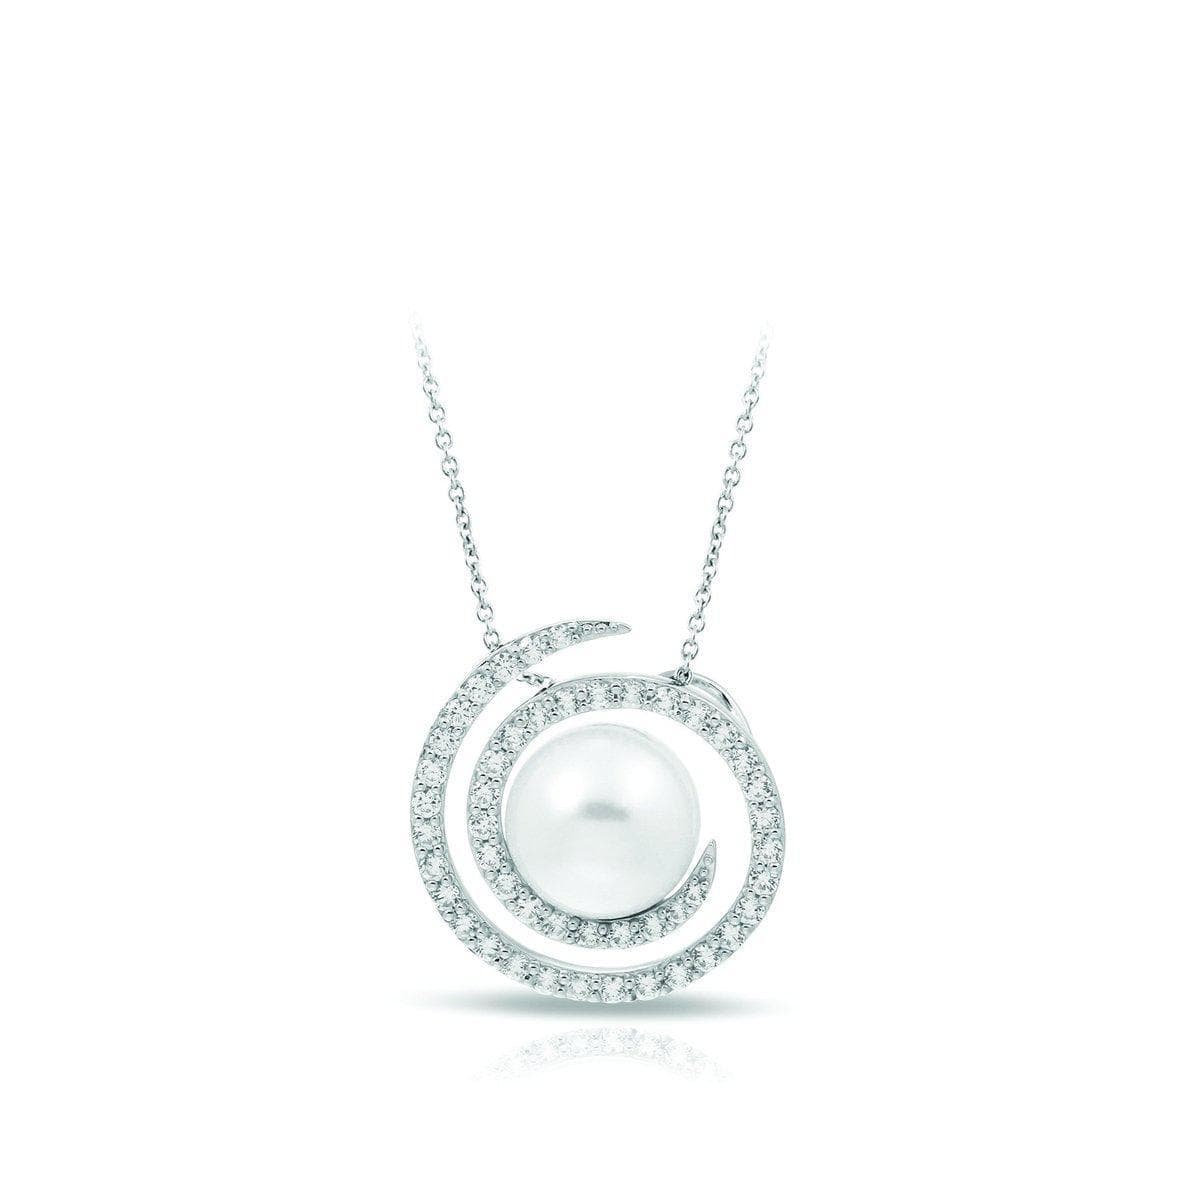 Thea White Pendant-Belle Etoile-Renee Taylor Gallery